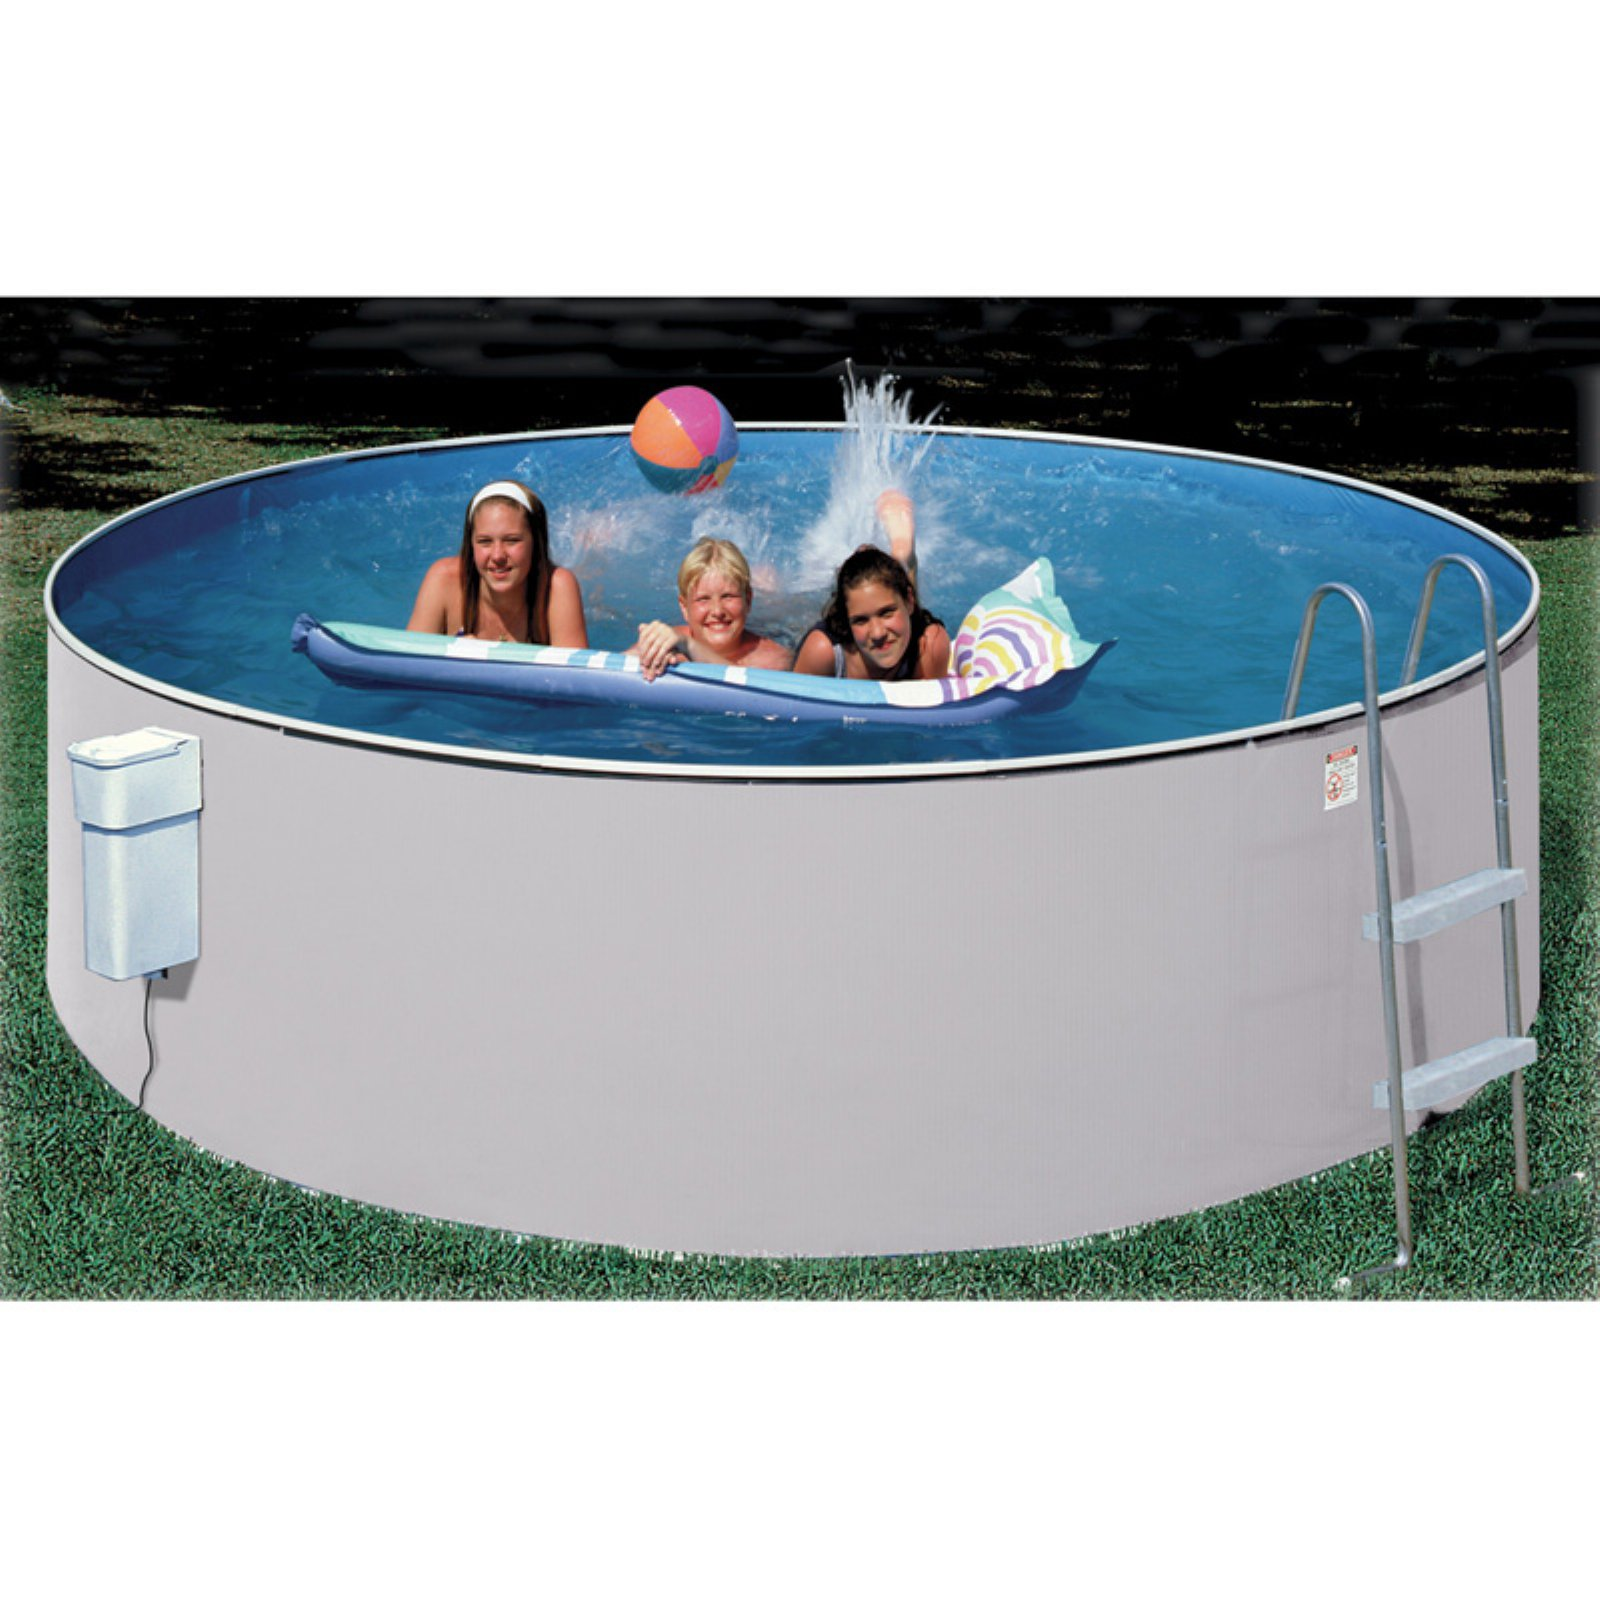 "Heritage Round 12' x 36"" Above Ground Swimming Pool by Above Ground Pools"